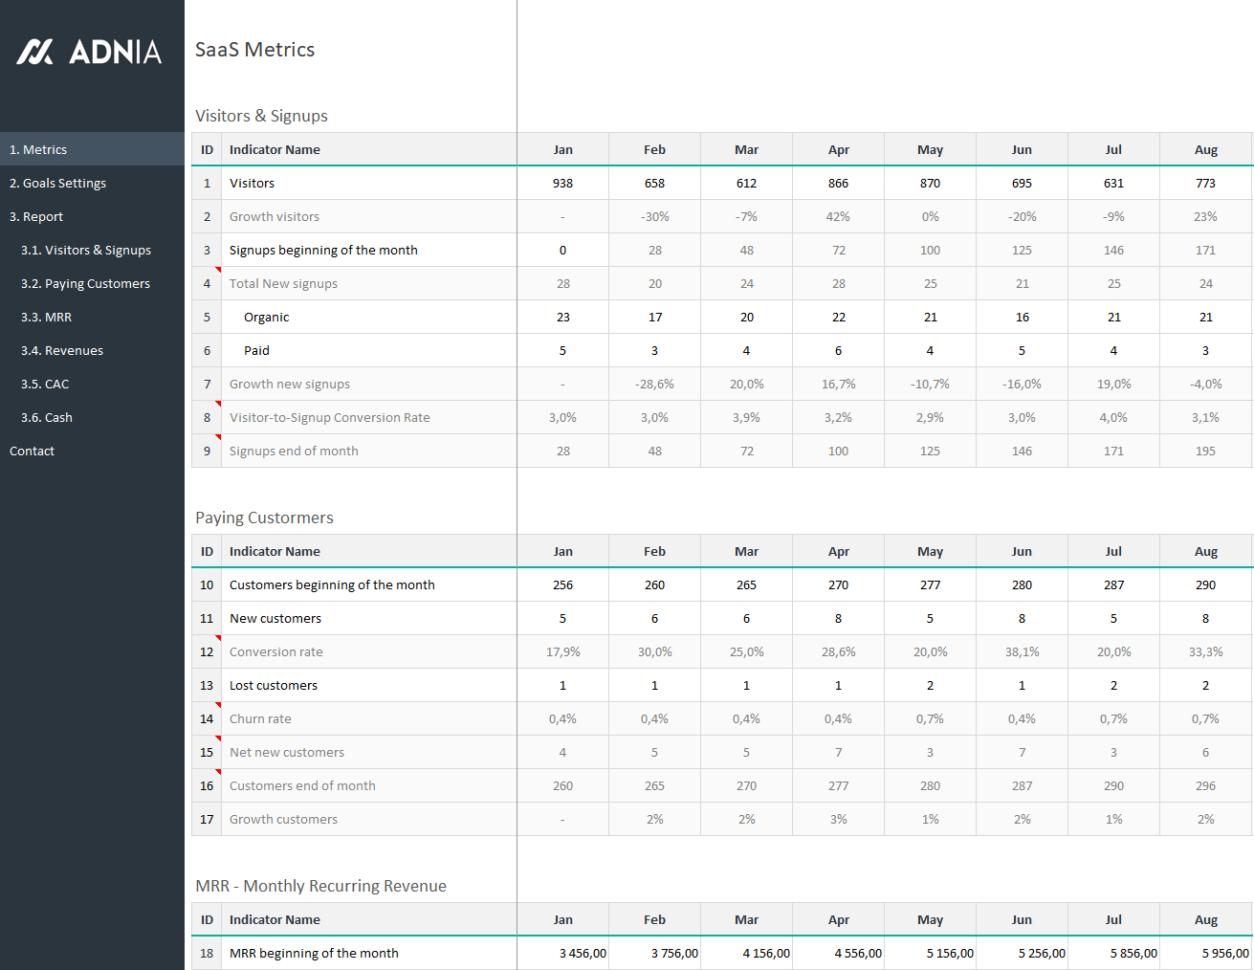 Saas Metrics Spreadsheet For Saas Metrics Template  Saas Metrics Dashboard Template  Adnia